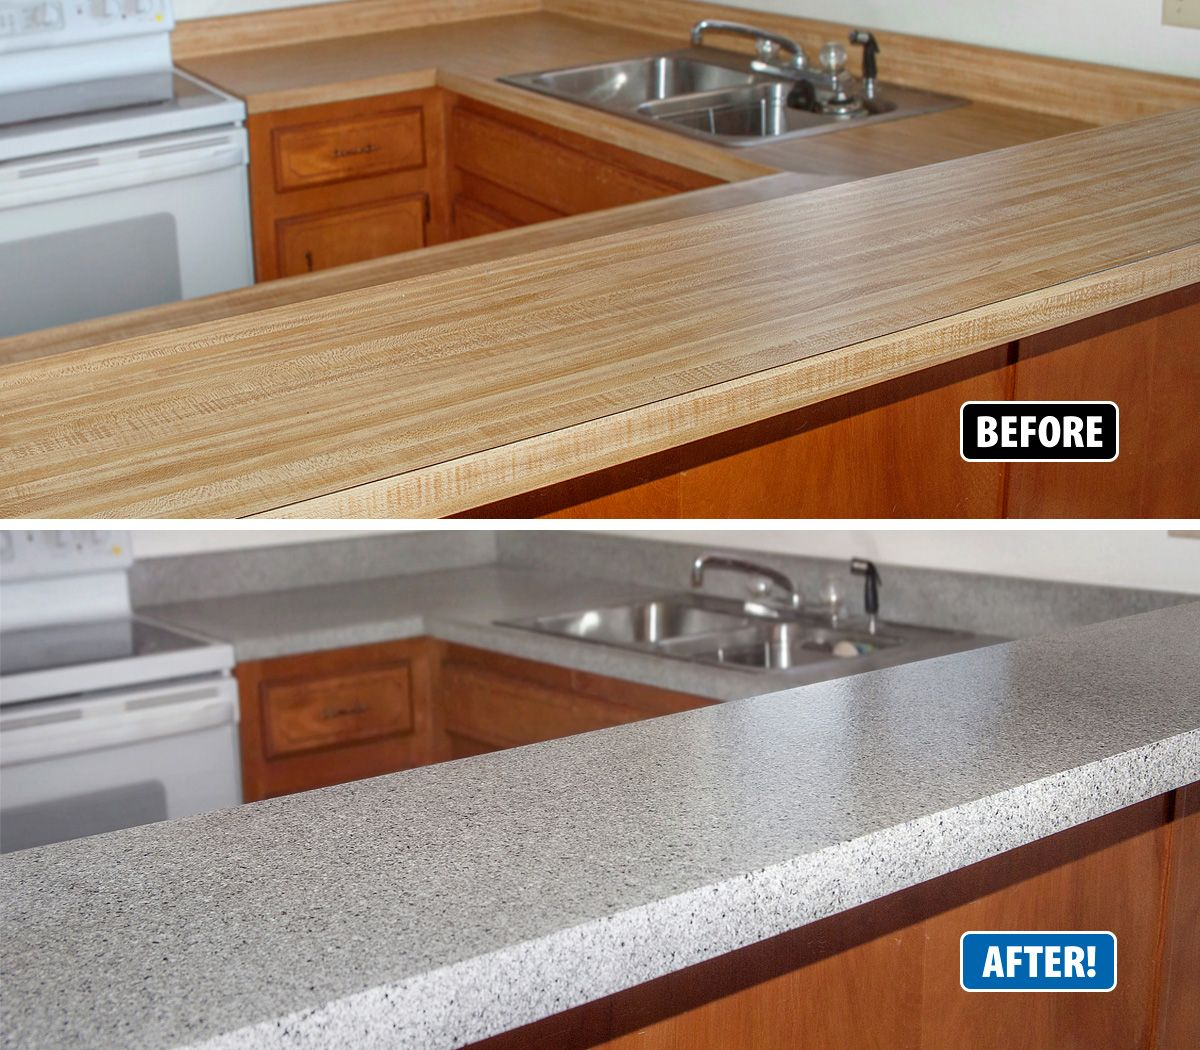 Refinishing By Miracle Method Is A Great Alternative To Tear Out